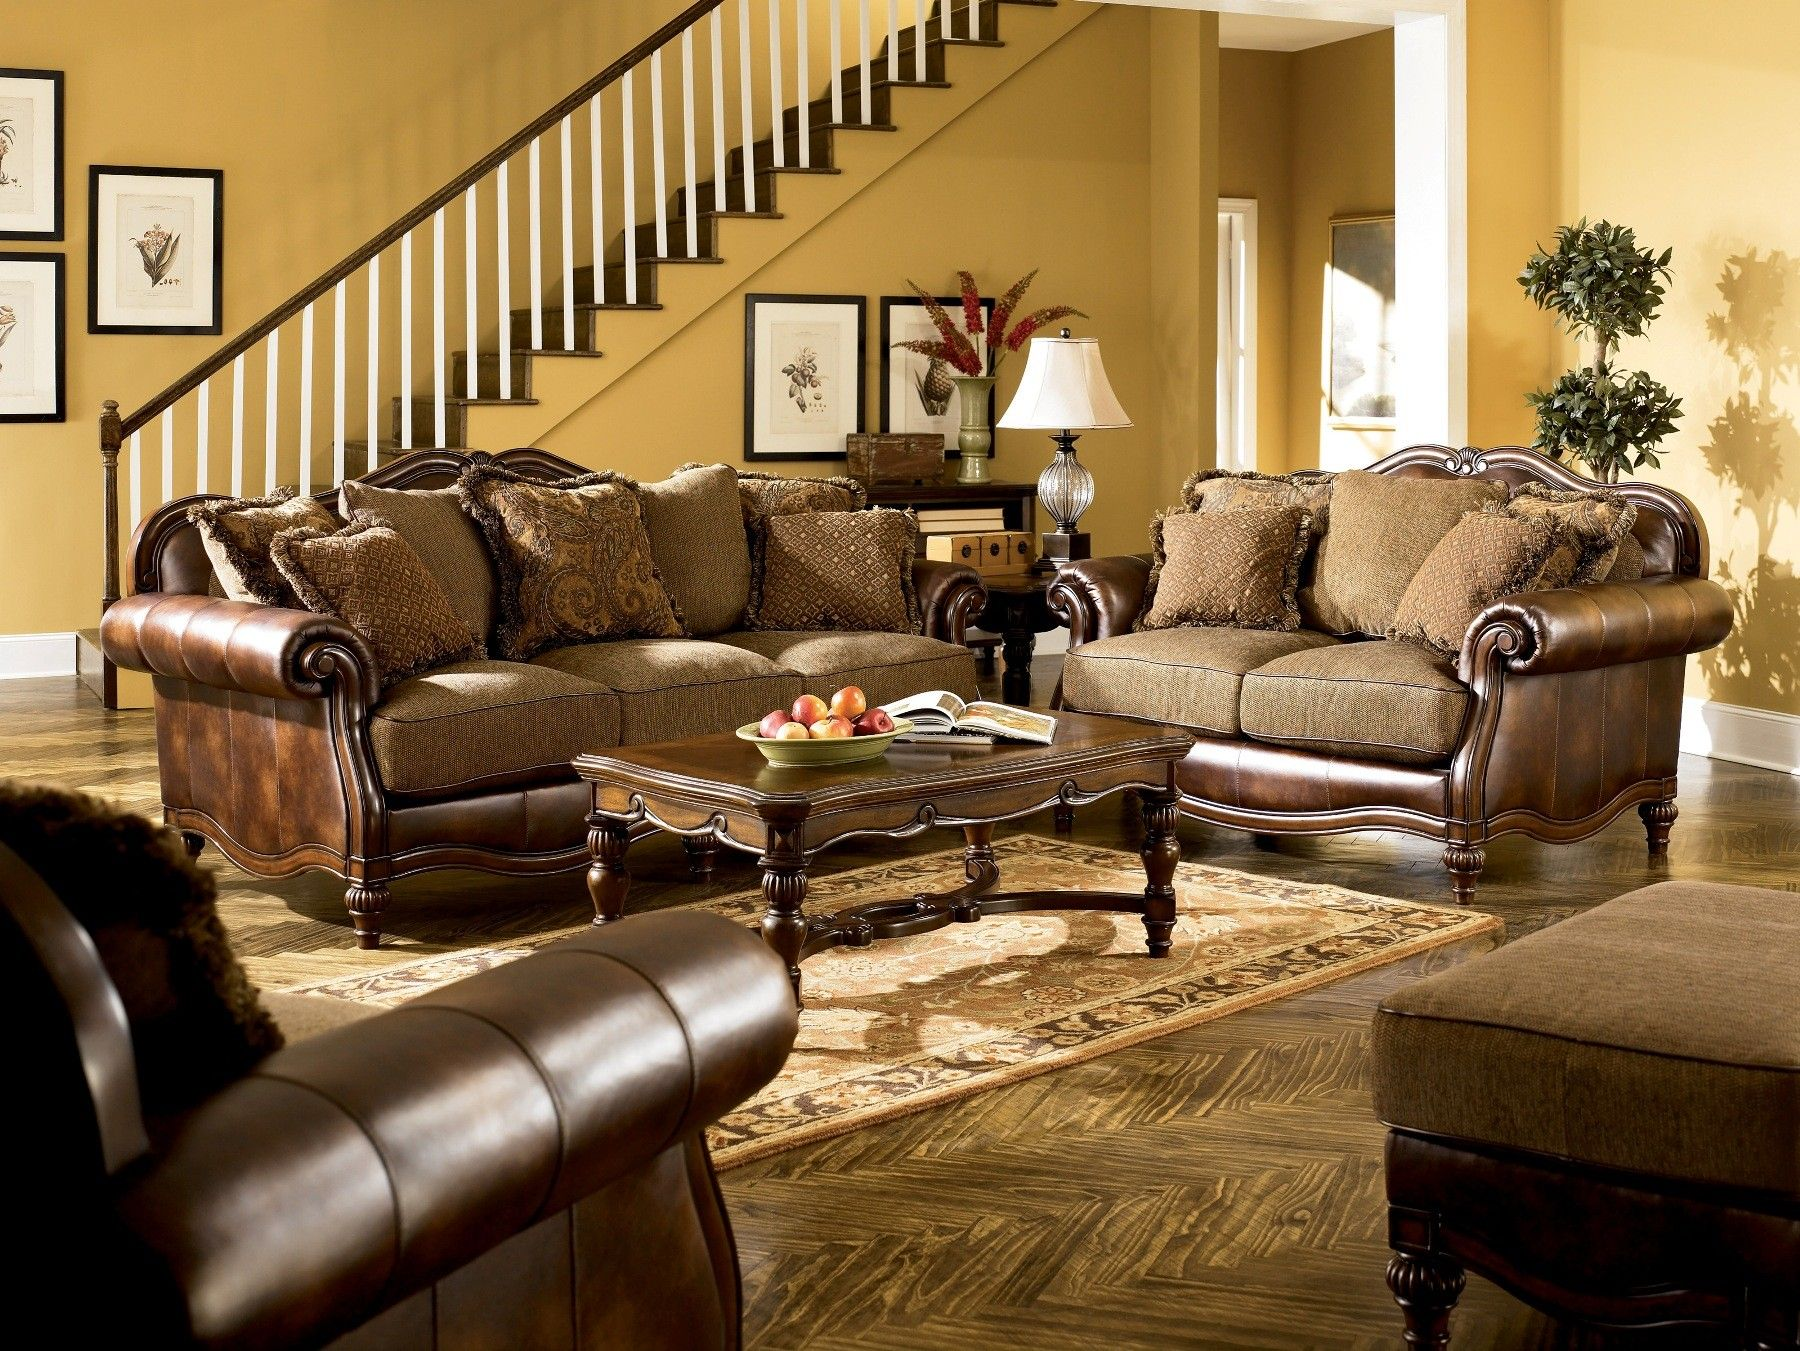 Claremore Antique Living Room Set  Curry's Palace*  Pinterest Beauteous Cheap Living Room Sets Under 300 Inspiration